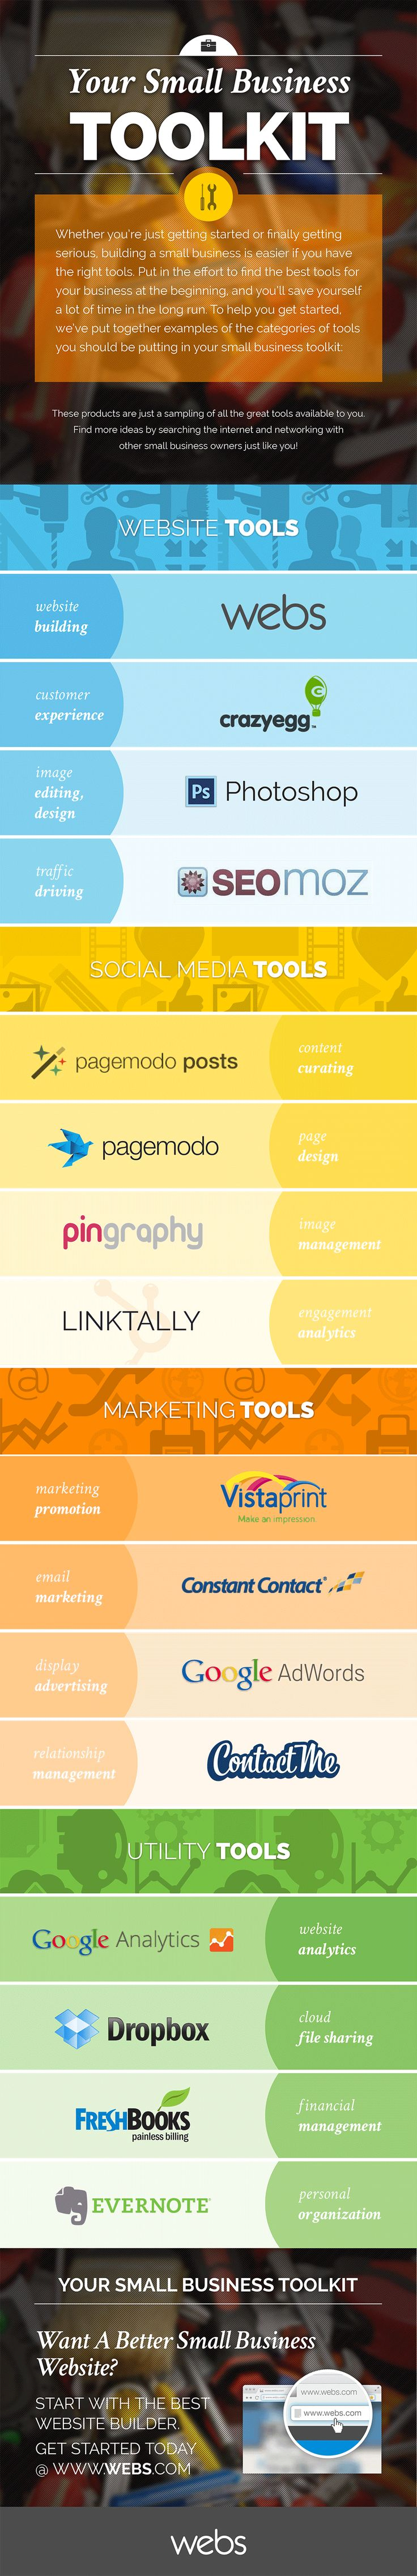 Your small business toolkit #infographic